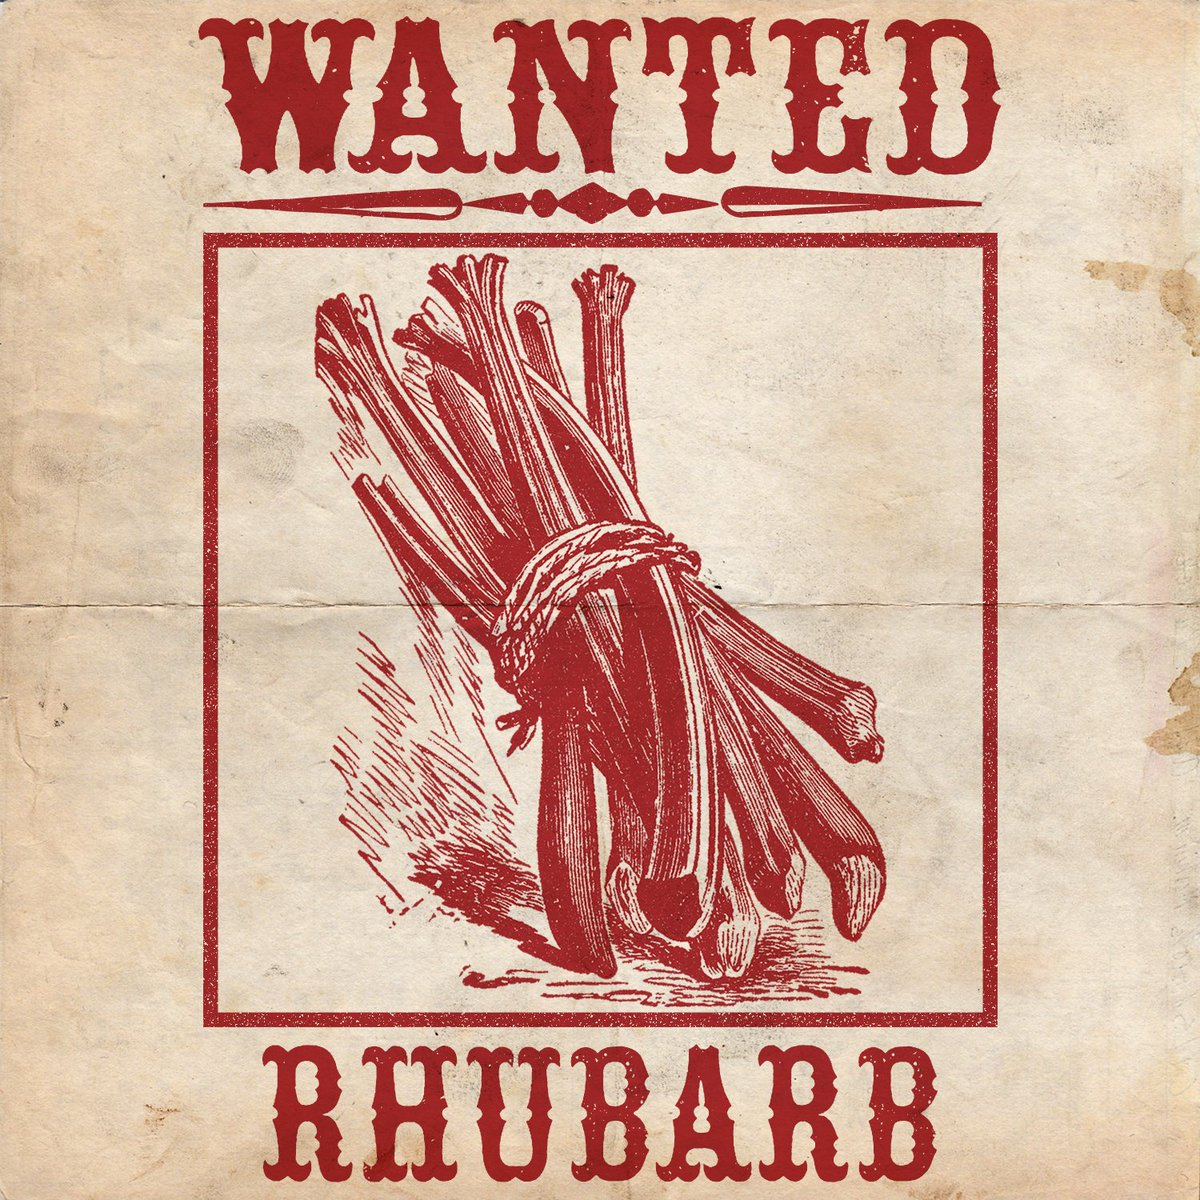 U-Pick Series No. 1  Step 1: Bring us your clean ripe Rhubarb Step 2: We'll brew it up Step 3: You get beer in trade https://t.co/aCurNC2iWn